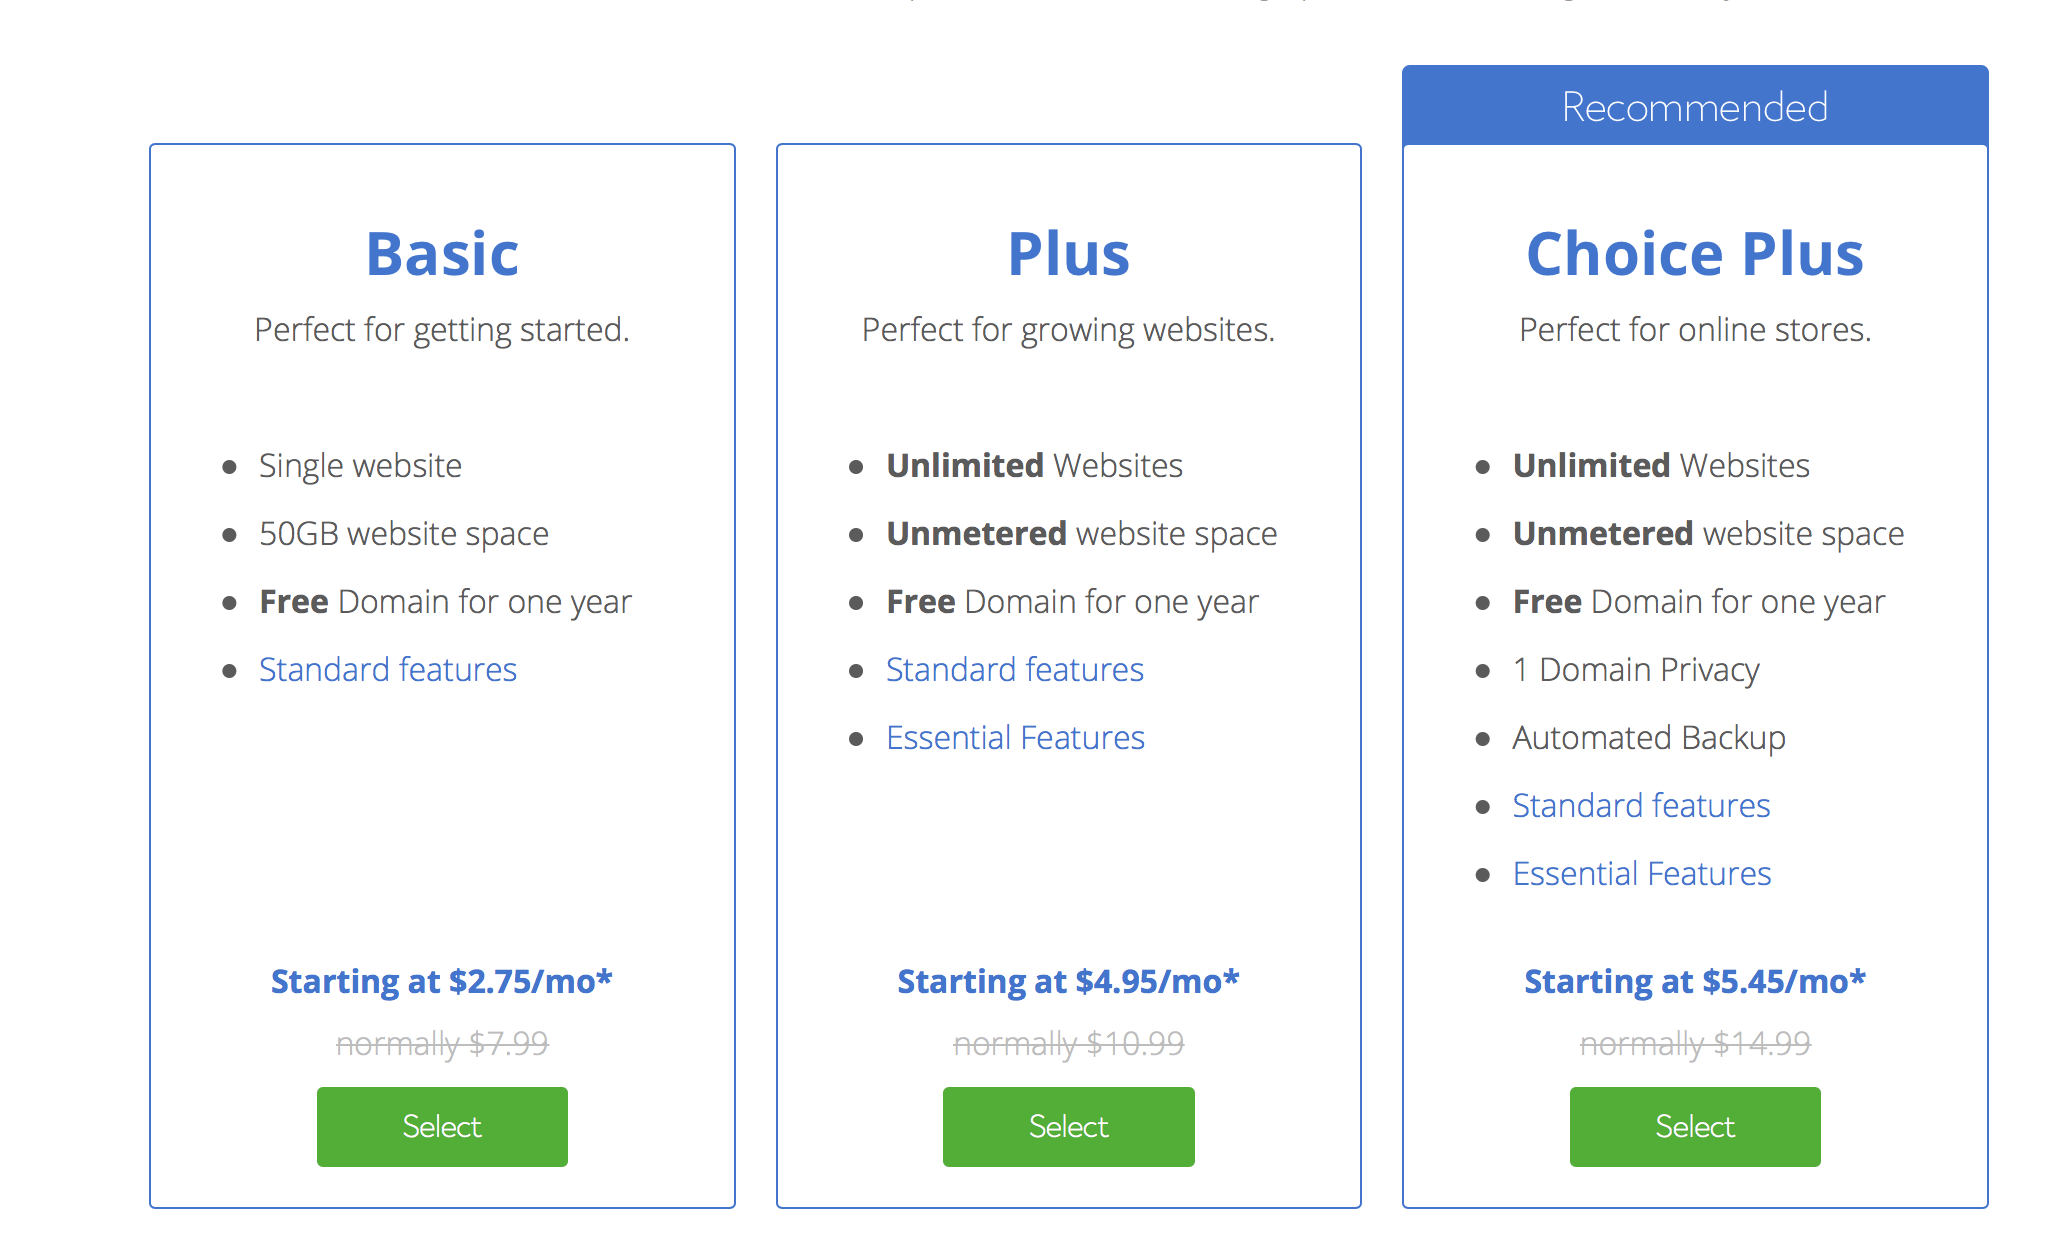 choosing-hosting-plan-form-discount-plan-pricing